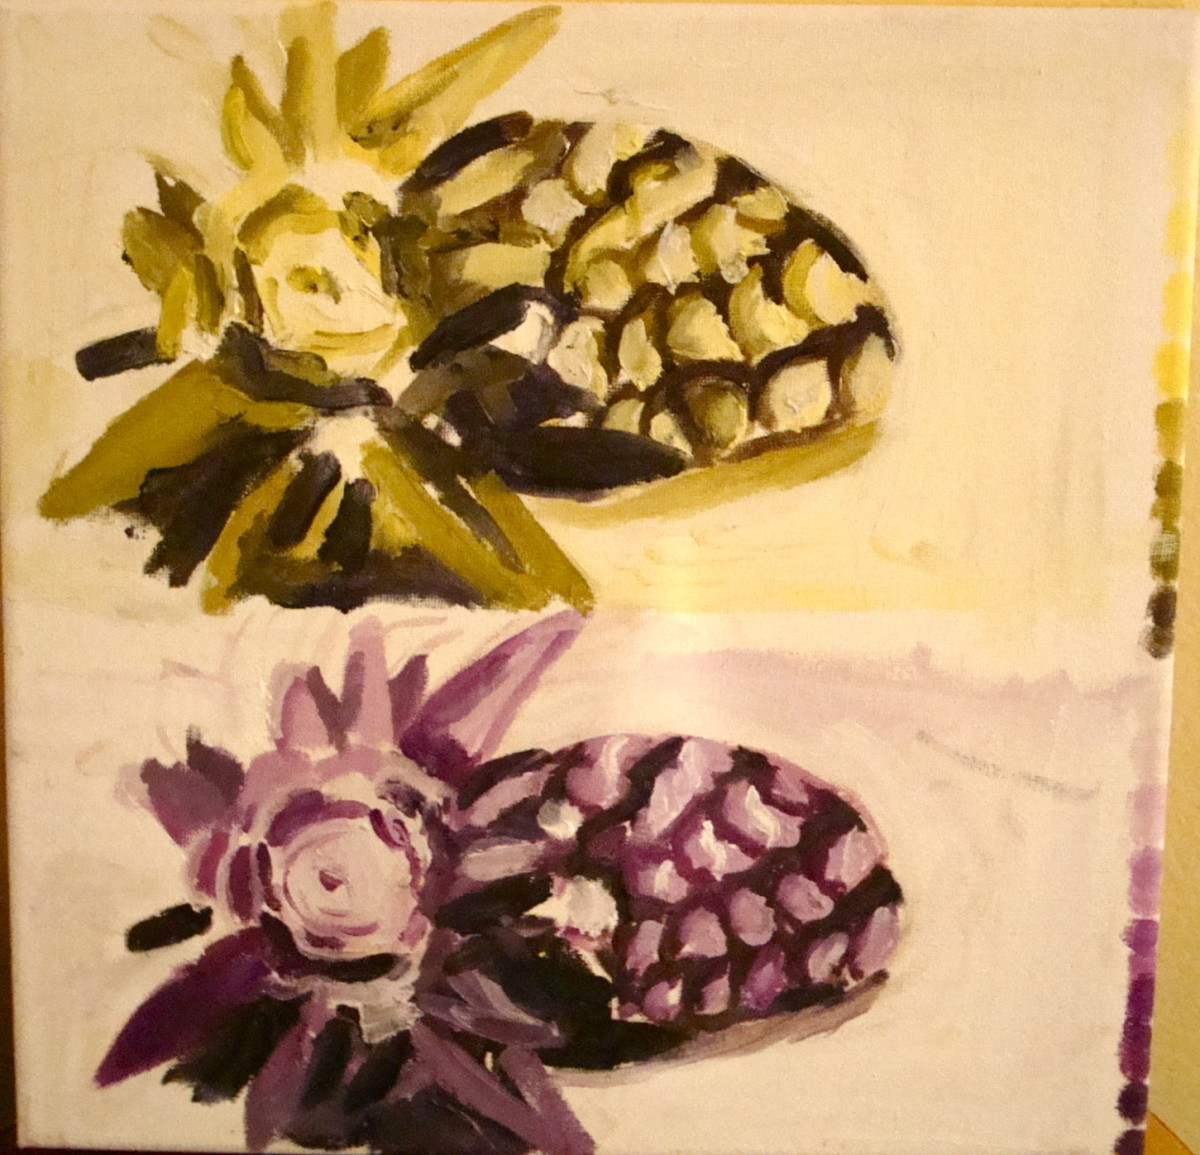 Yellow & Violet Pineapple